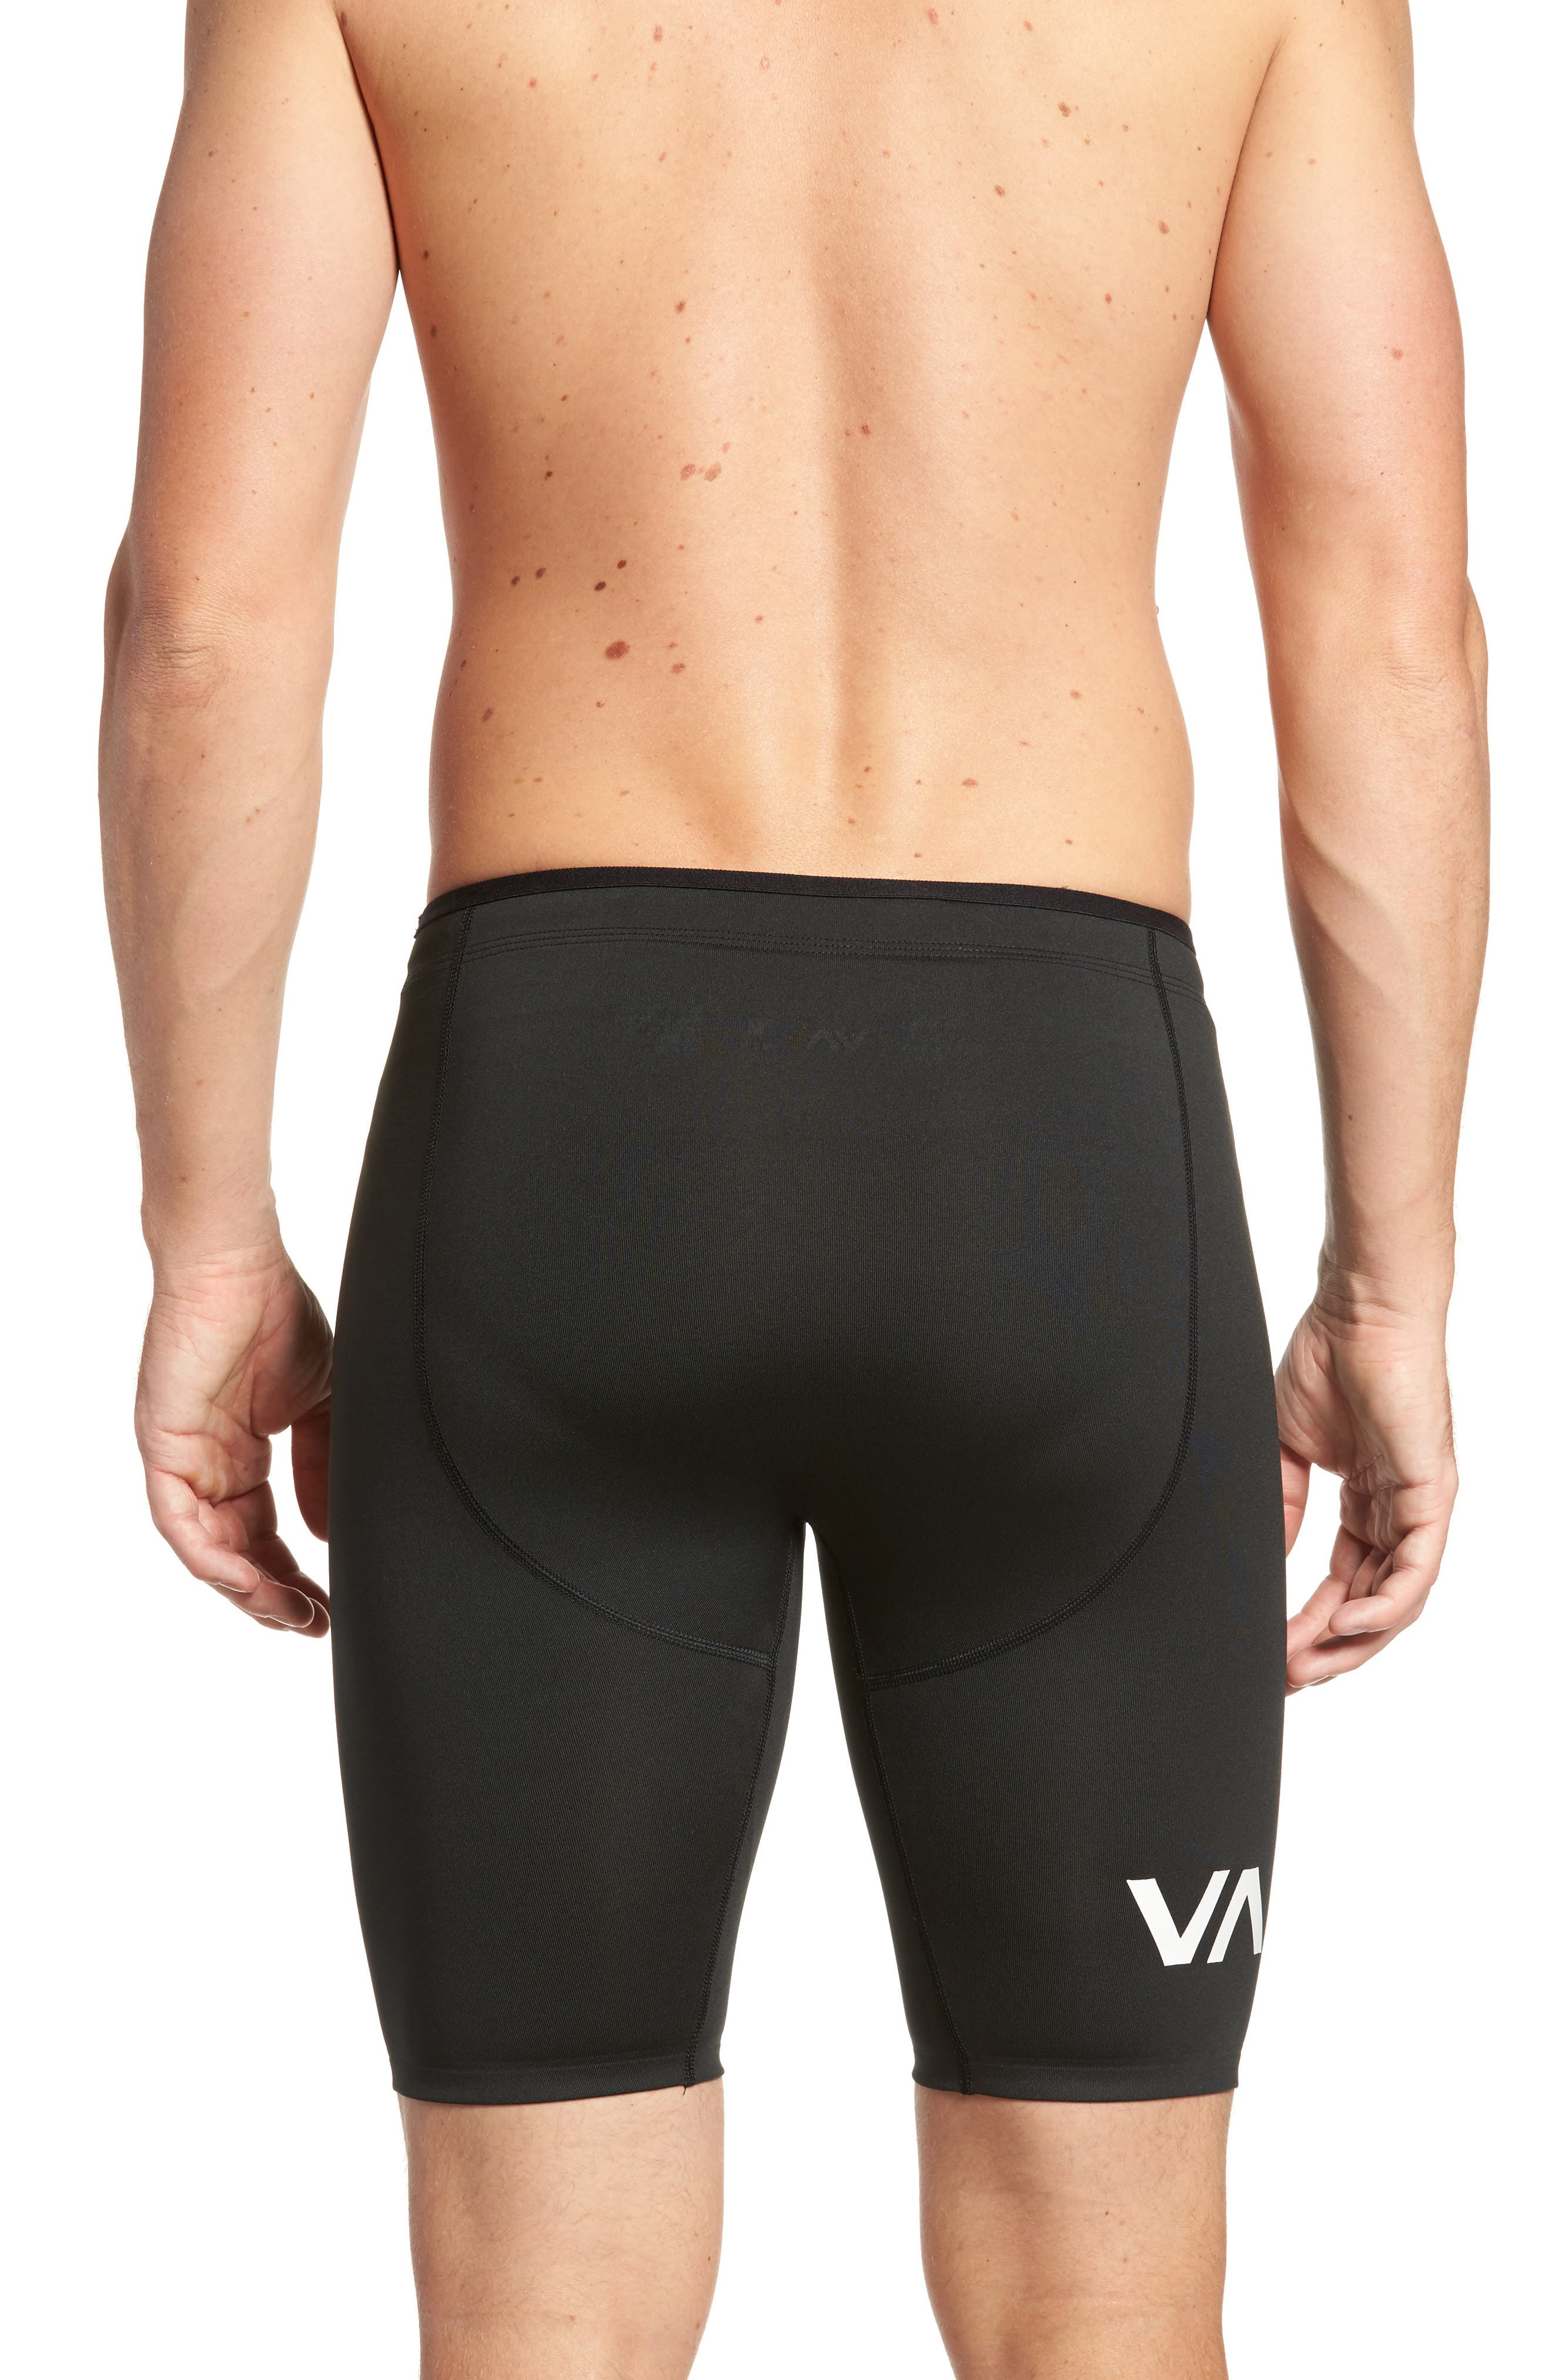 Sport Compression Shorts,                             Alternate thumbnail 2, color,                             001